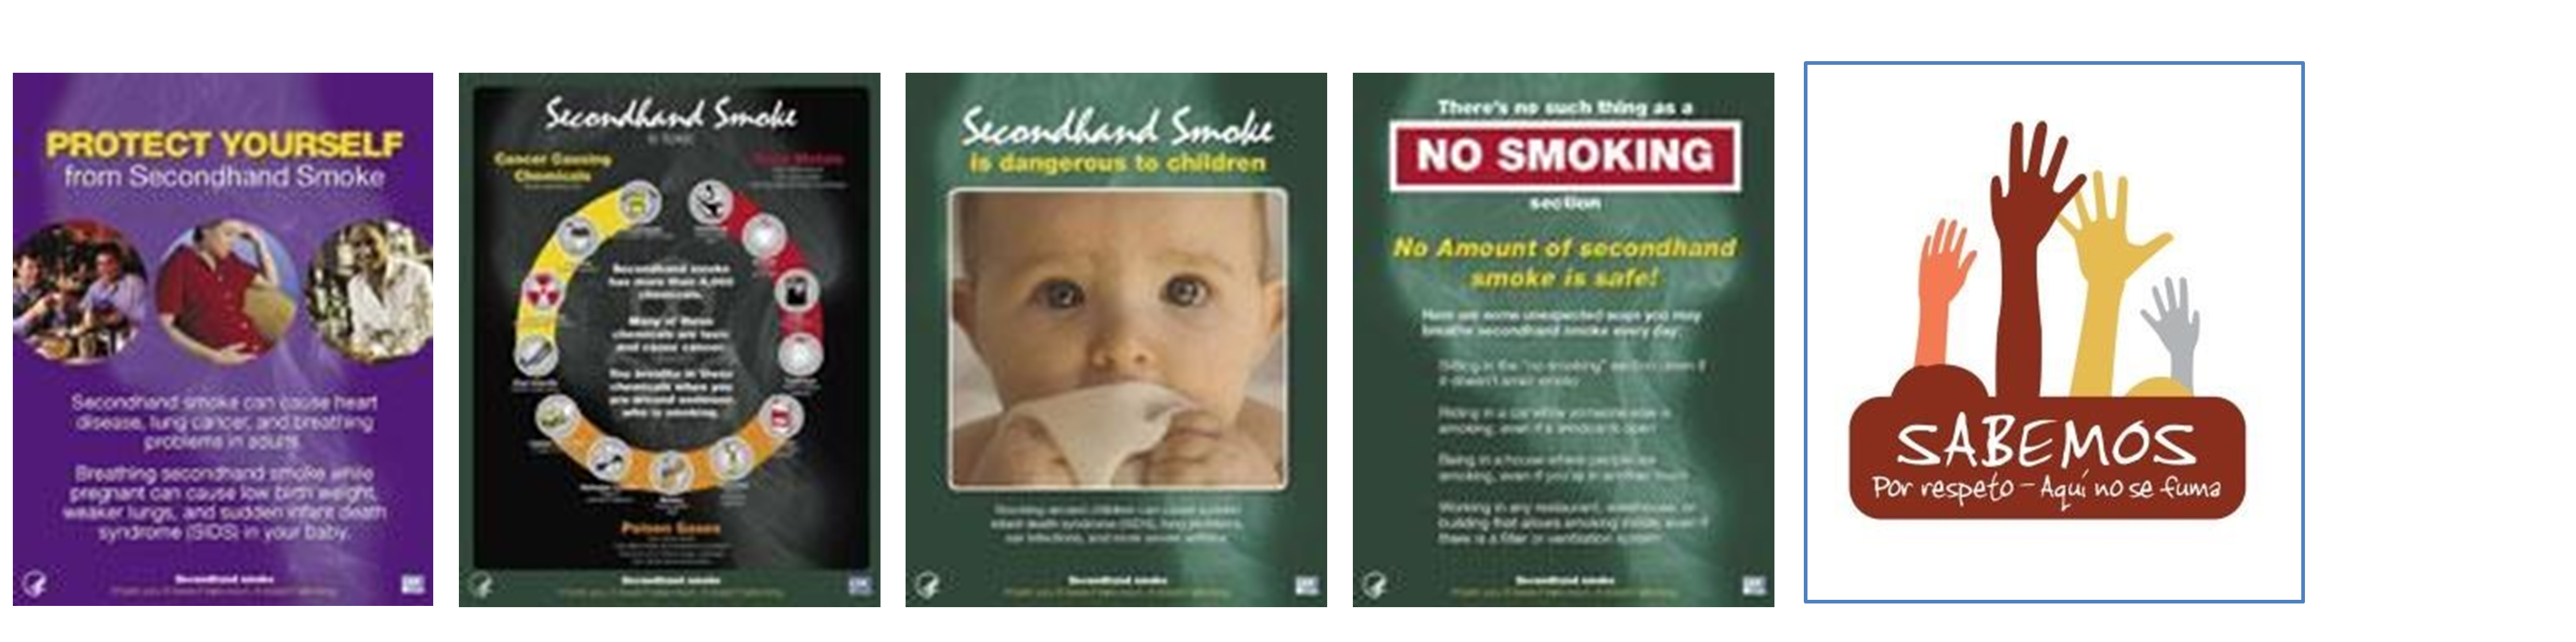 CDC Secondhand Smoke Posters